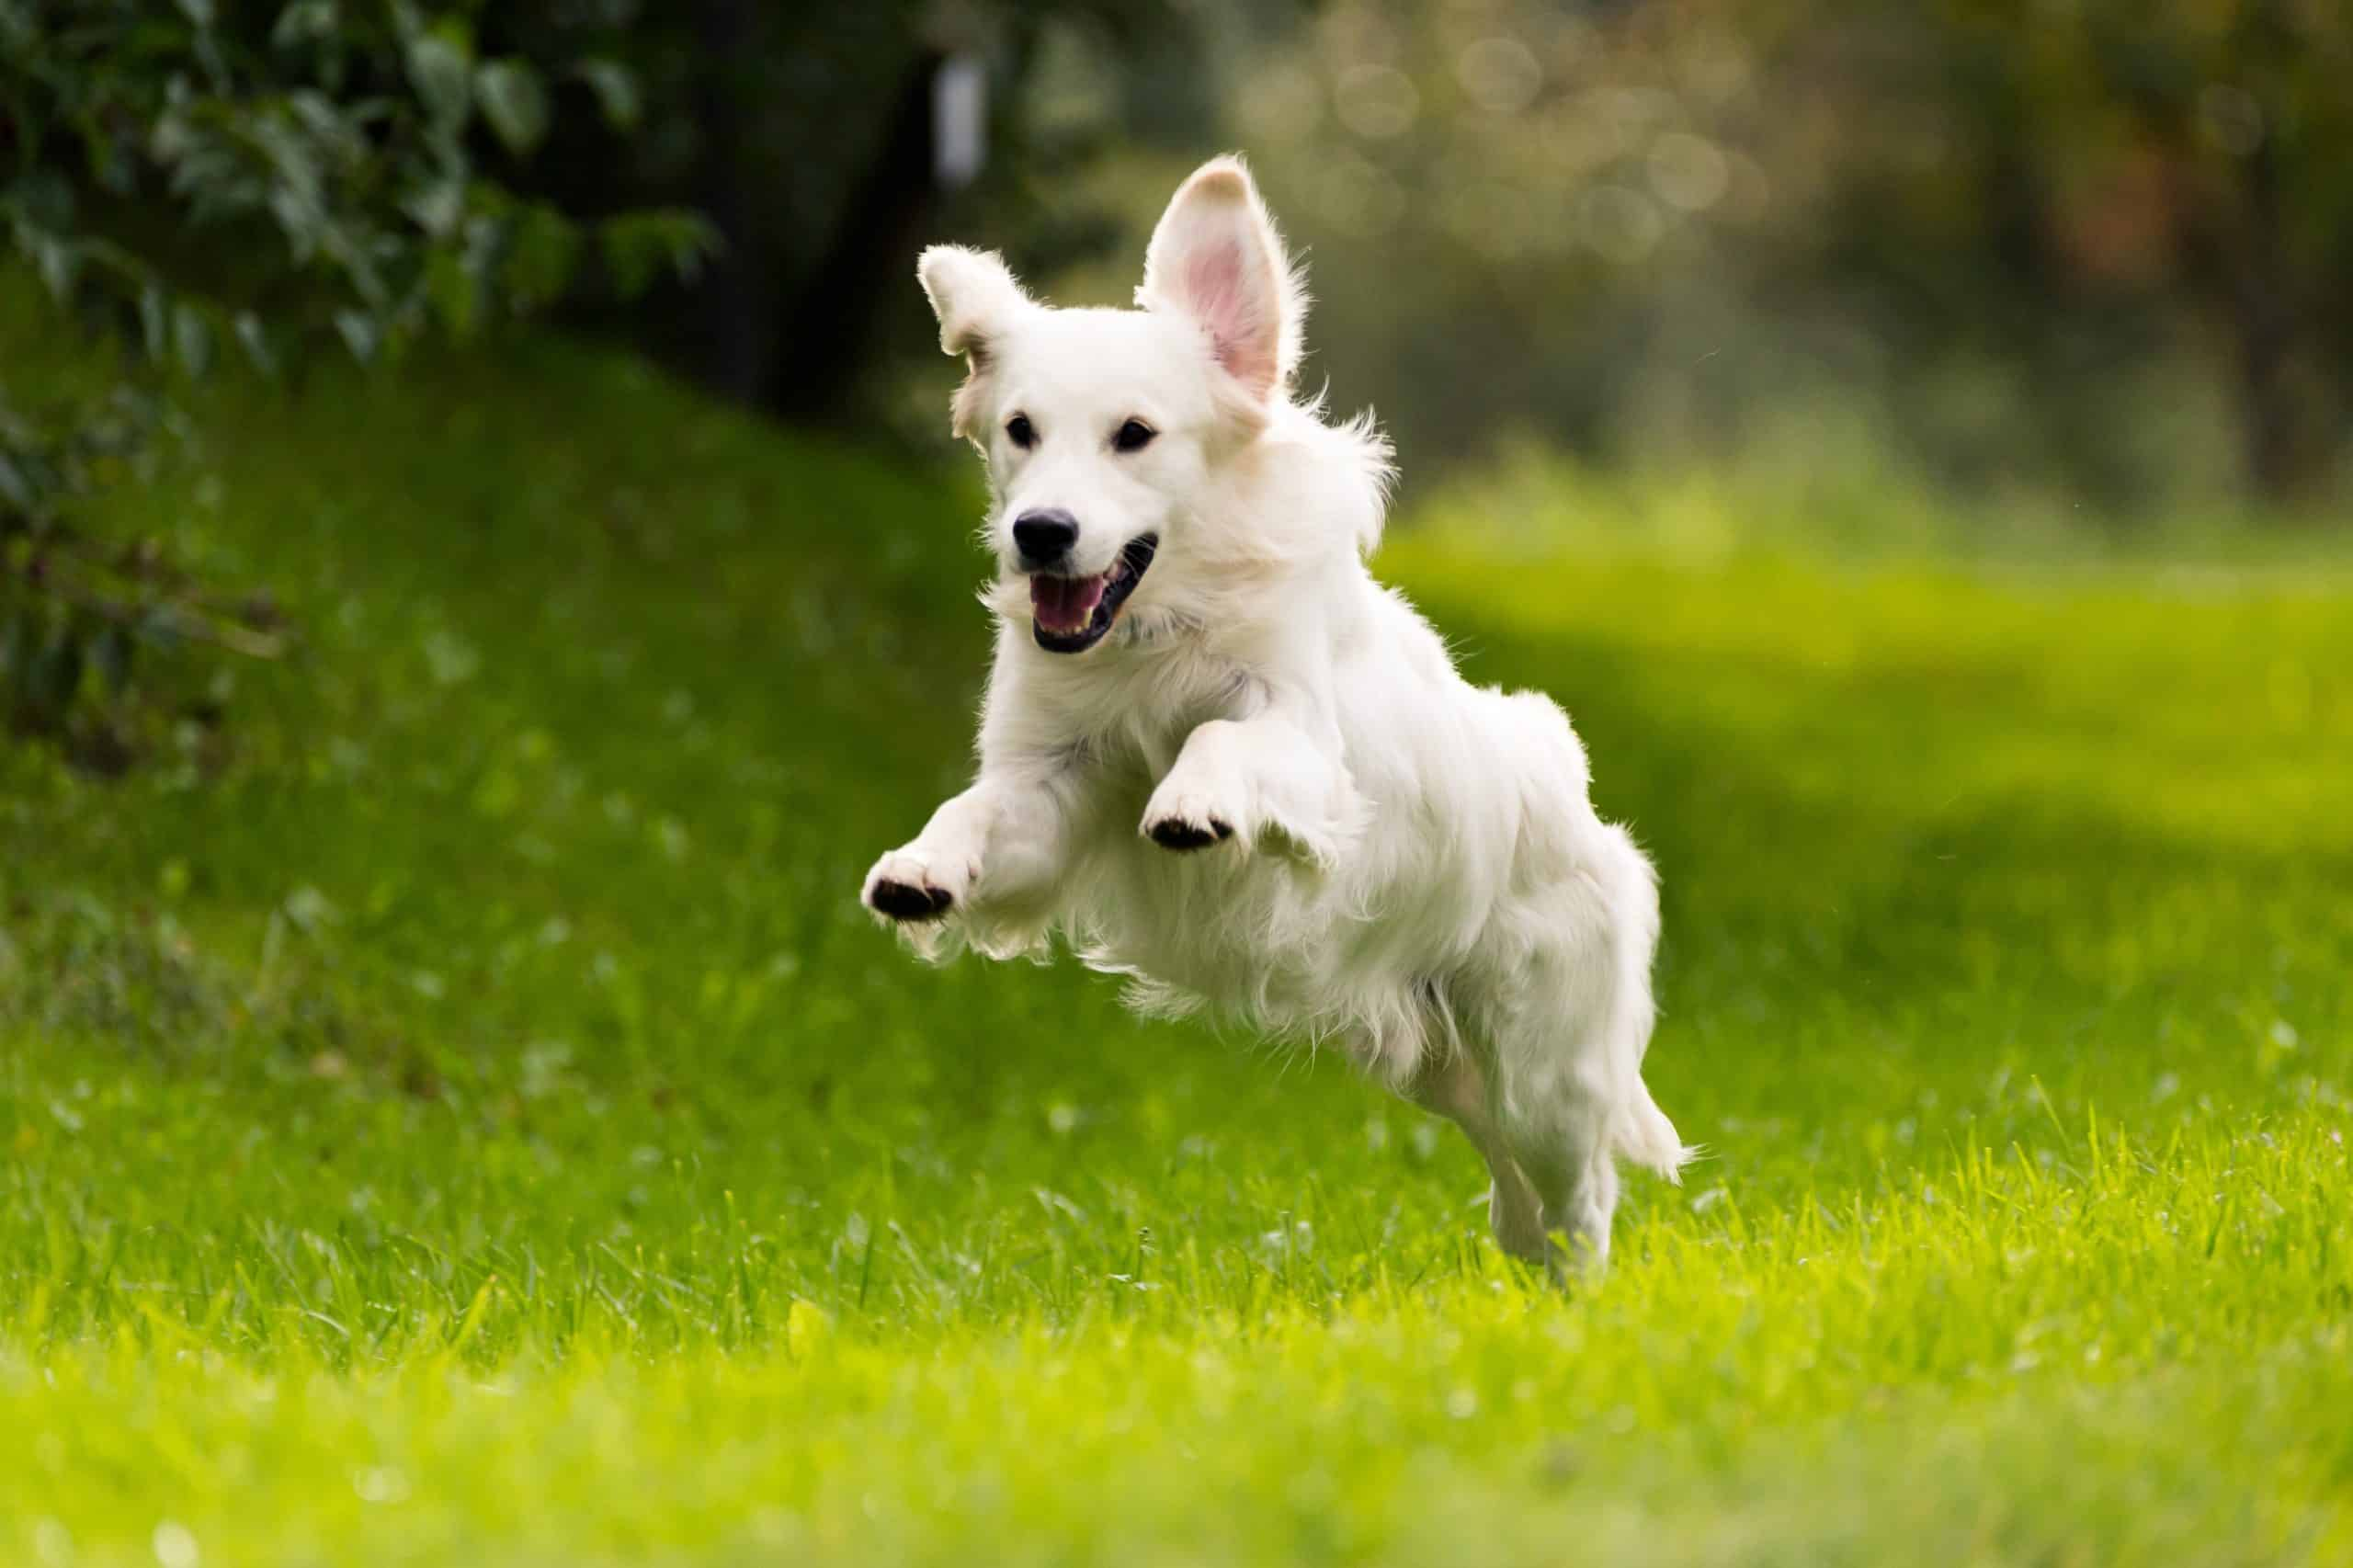 Golden Retriever Jumping While Running; how do you pick your name for your puppy?